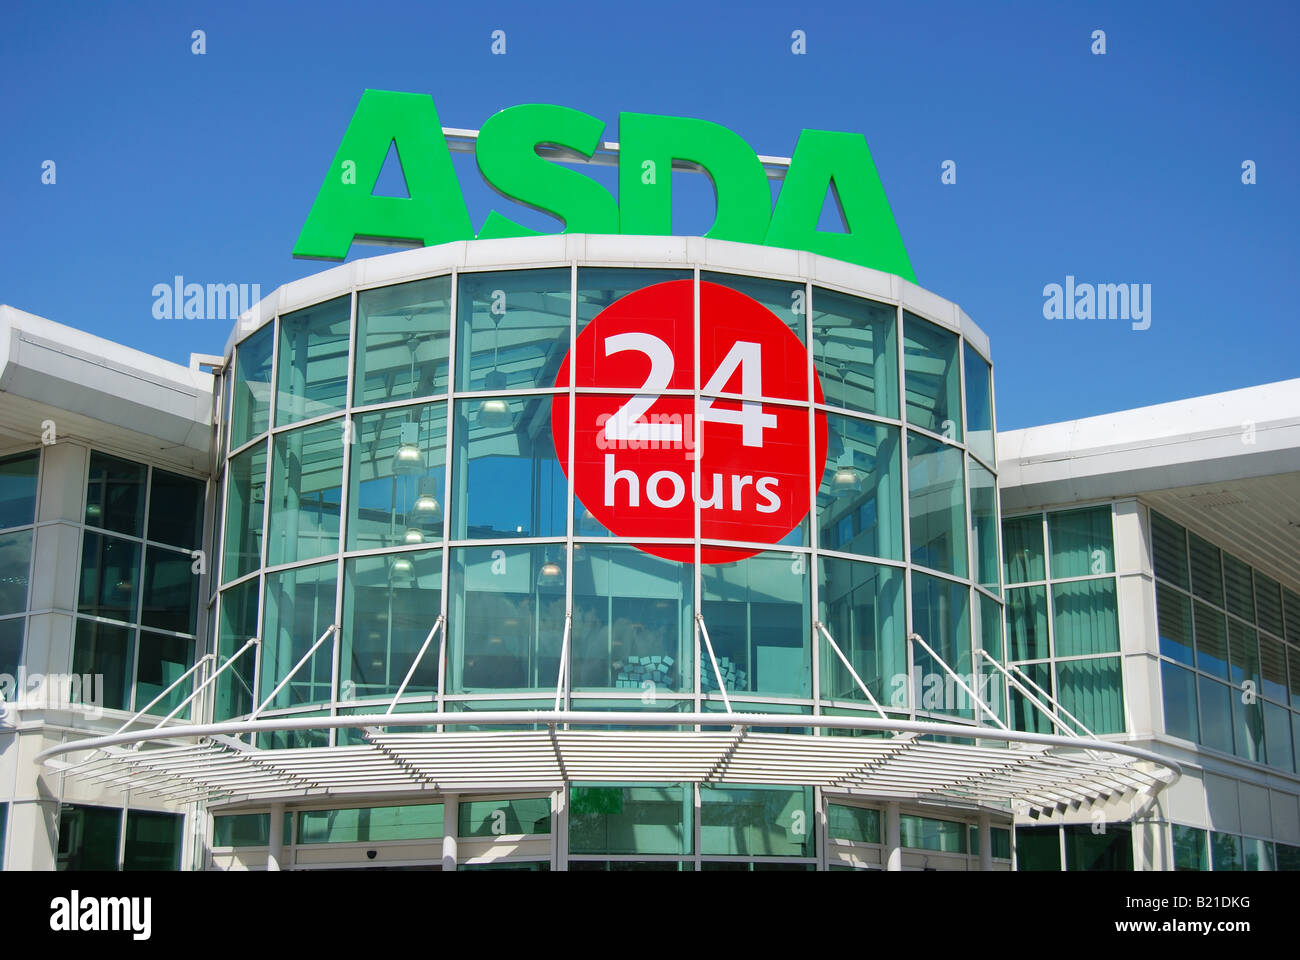 asda stores ltd is a british supermarket marketing essay Asda stores ltd is a british supermarket chain which retails food, clothing, general merchandise, toys and financial services it also has a mobile telephone network, (via the vodafone network), asda mobile.